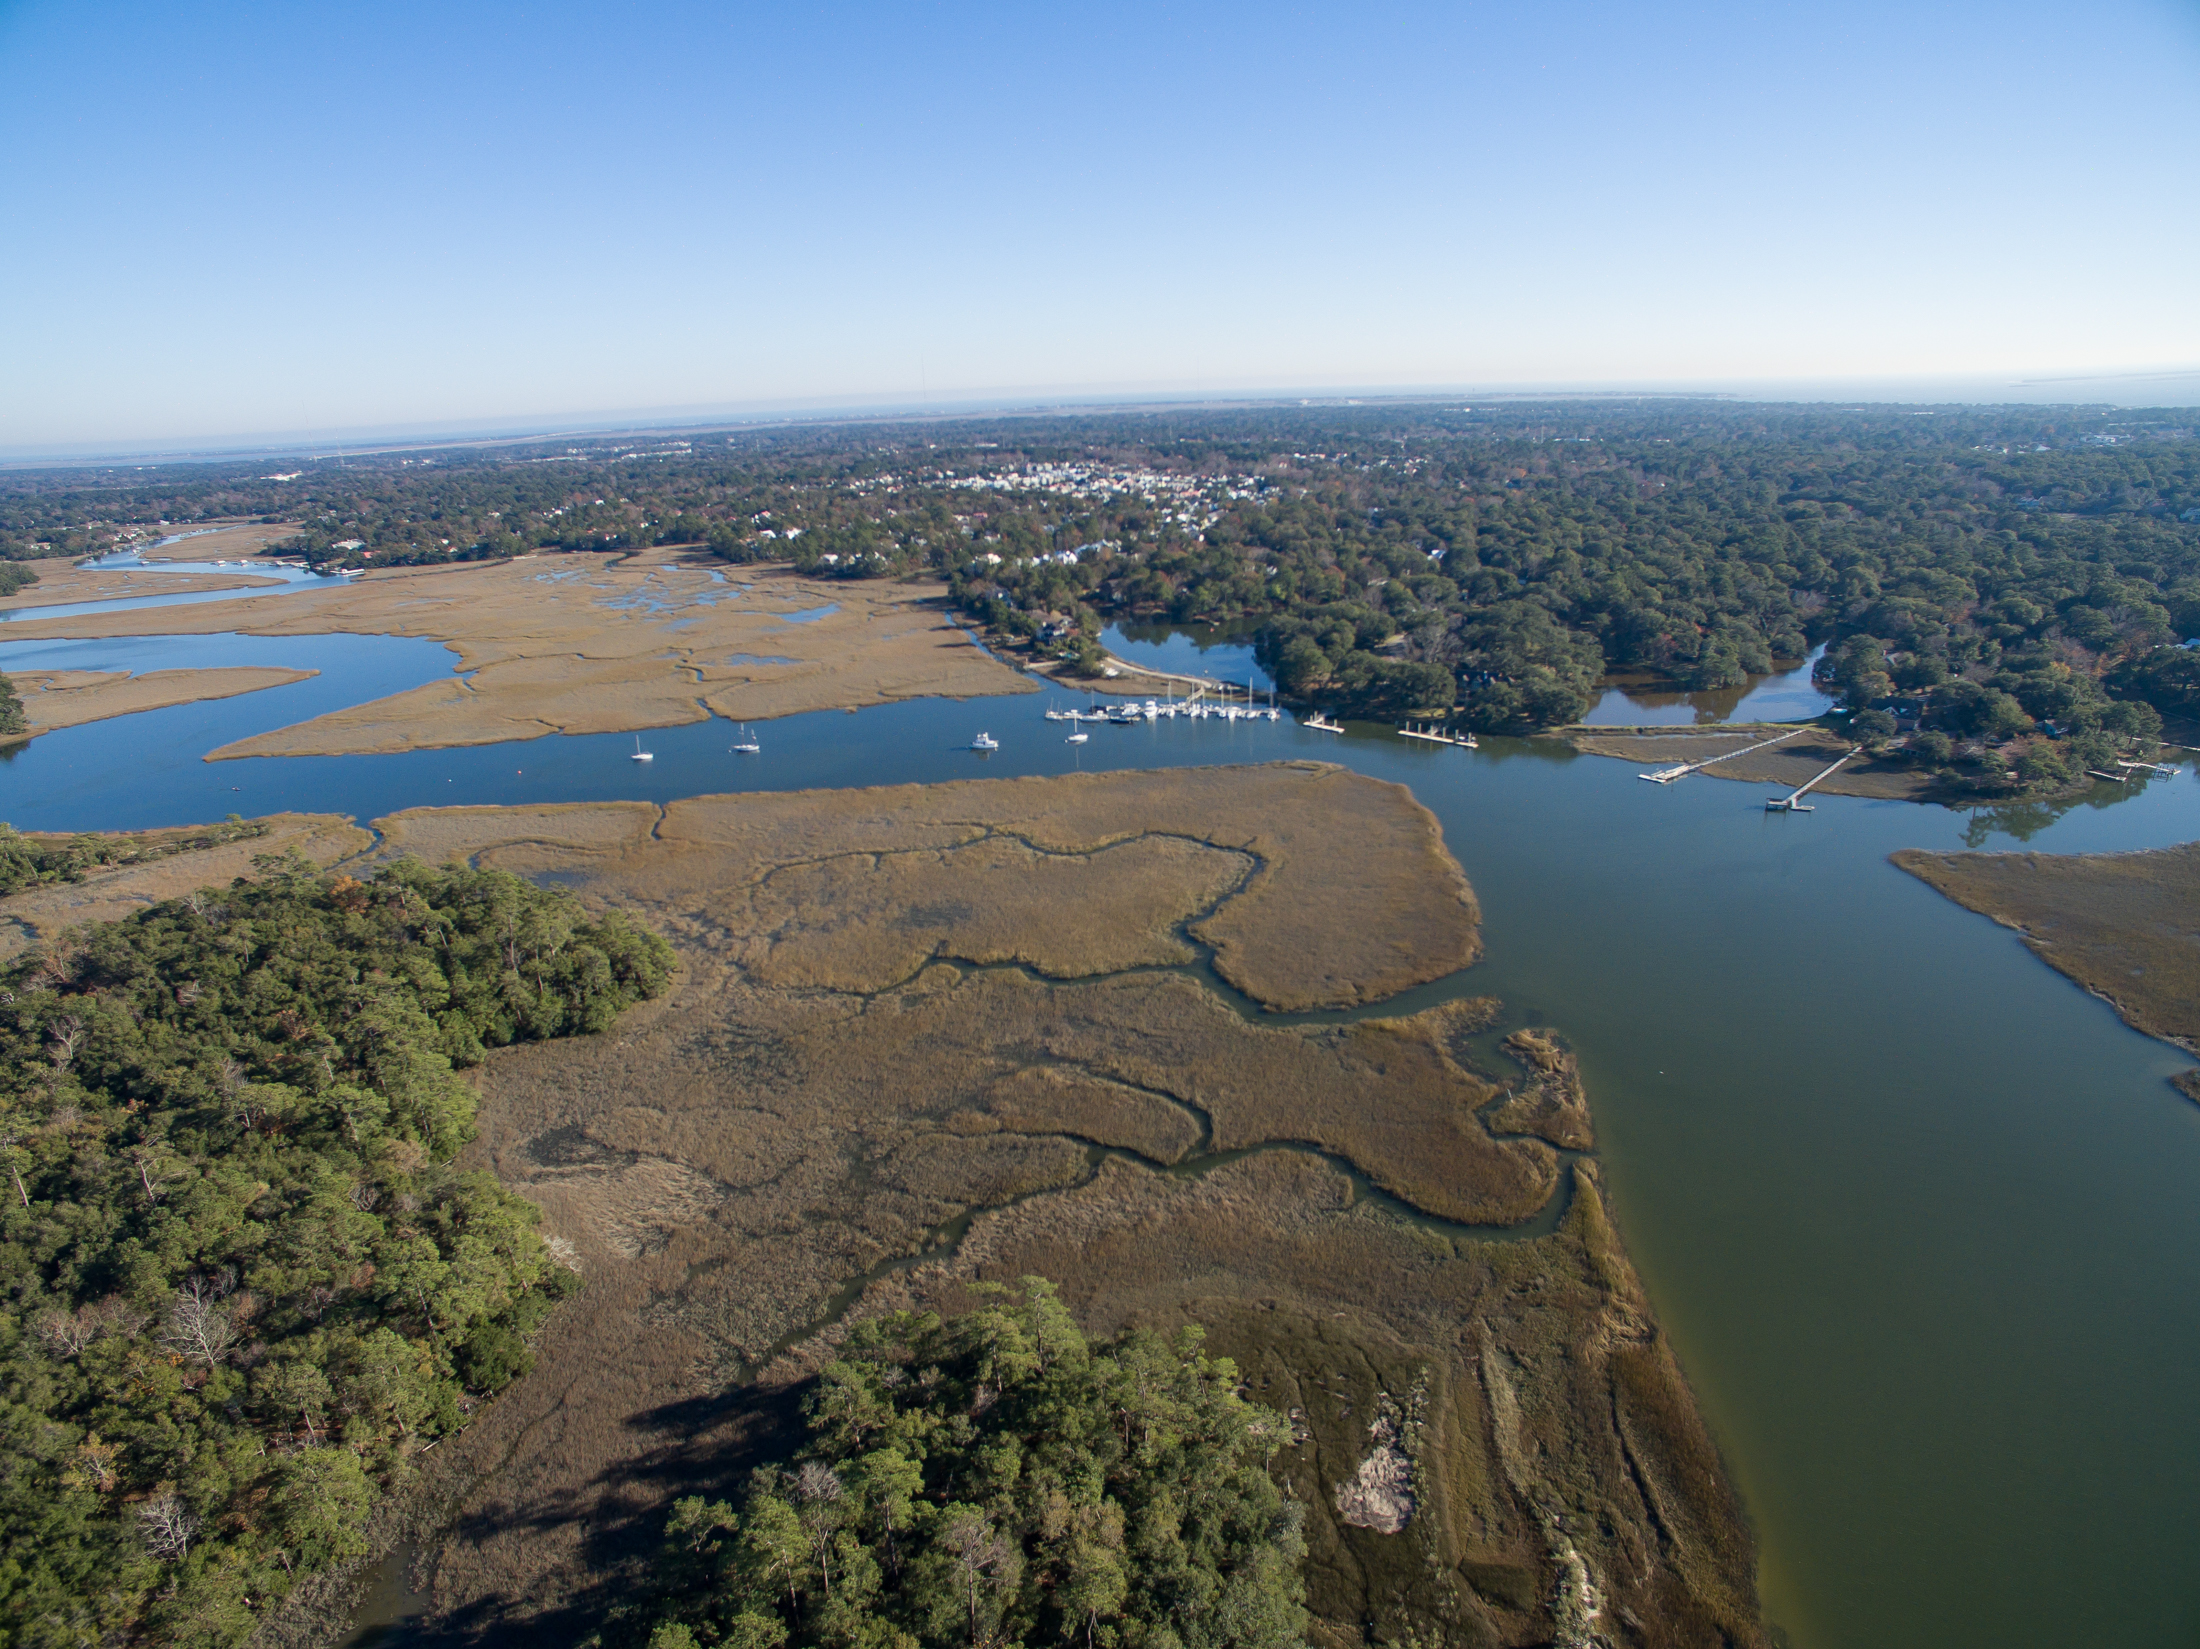 Aerial view of The Shipyard site in Mount Pleasant, SC